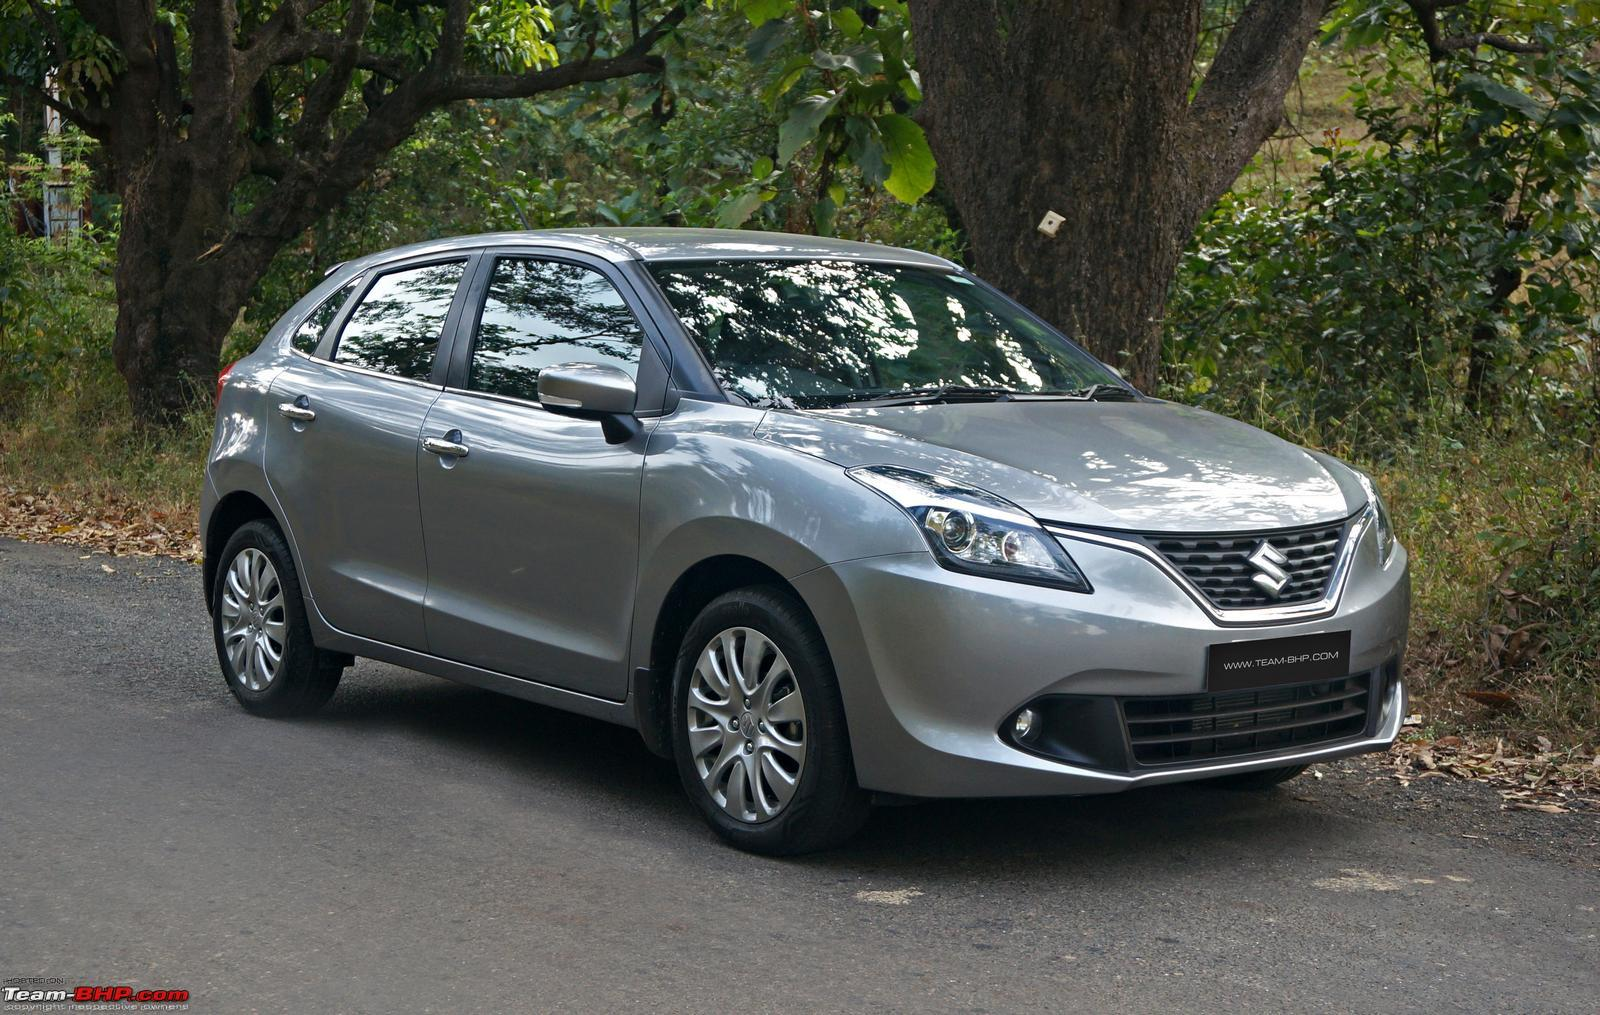 All Types baleno car images : My first car - Granite Gray Maruti Baleno 1.2 Delta - Team-BHP